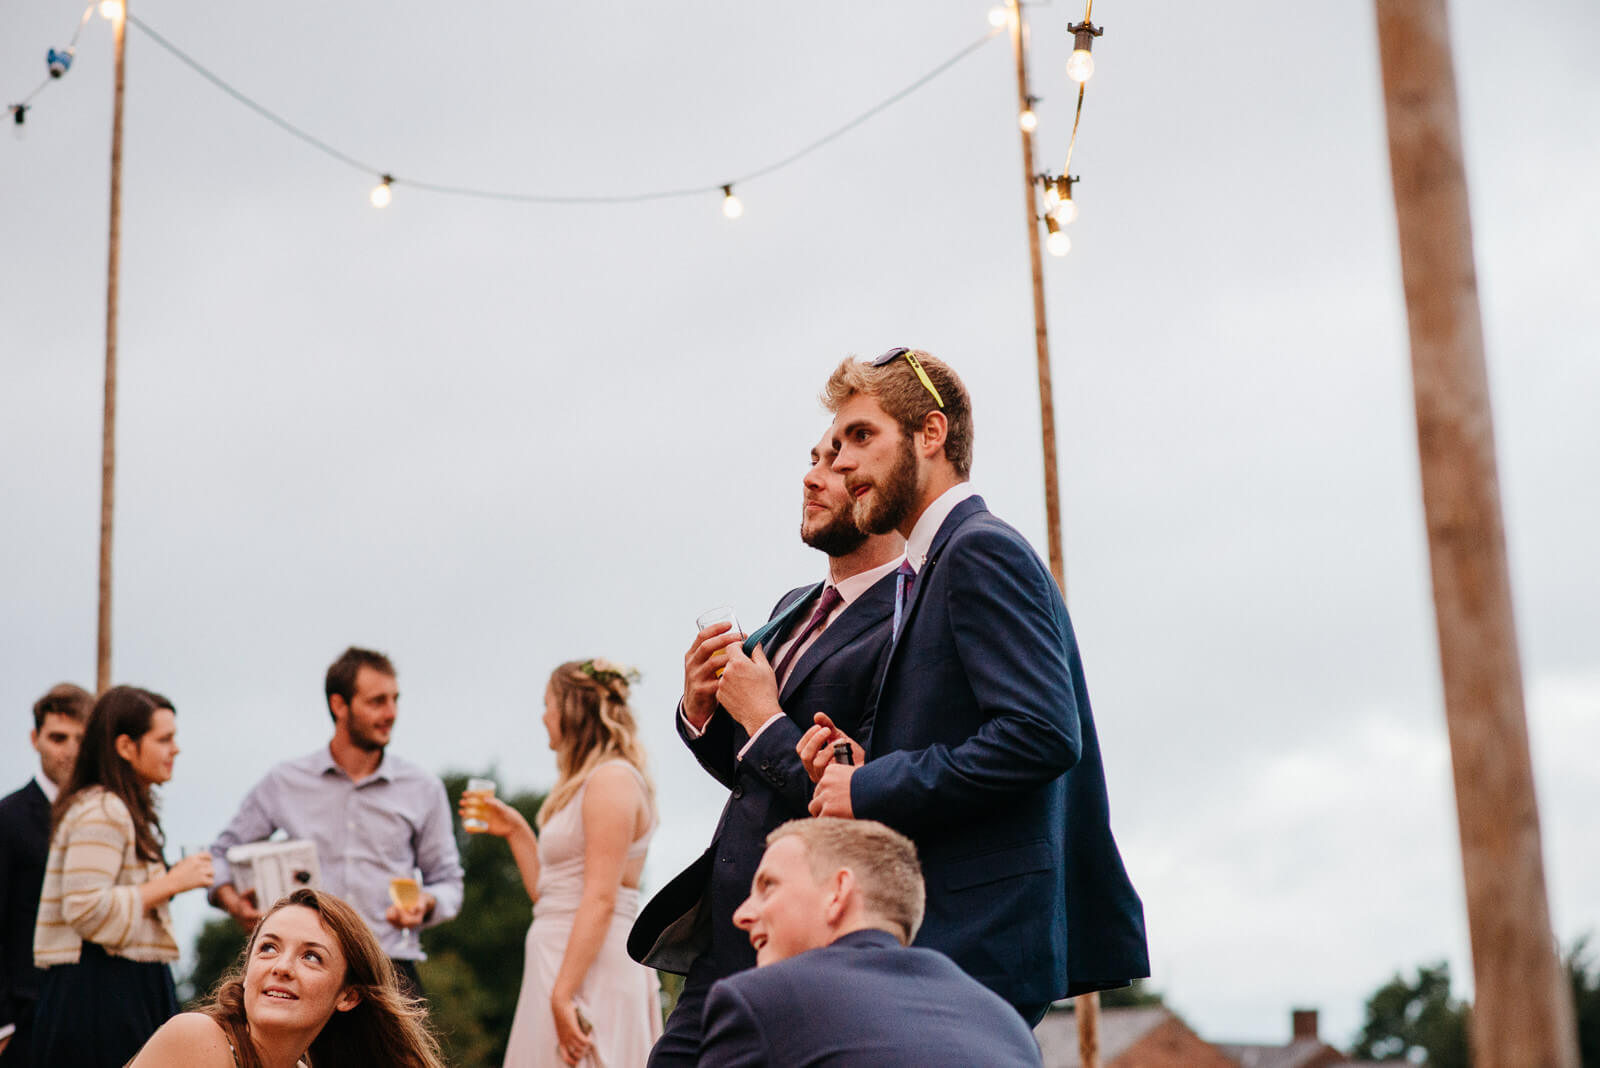 Wedding guests look on under festoon lighting at Shropshire festival wedding